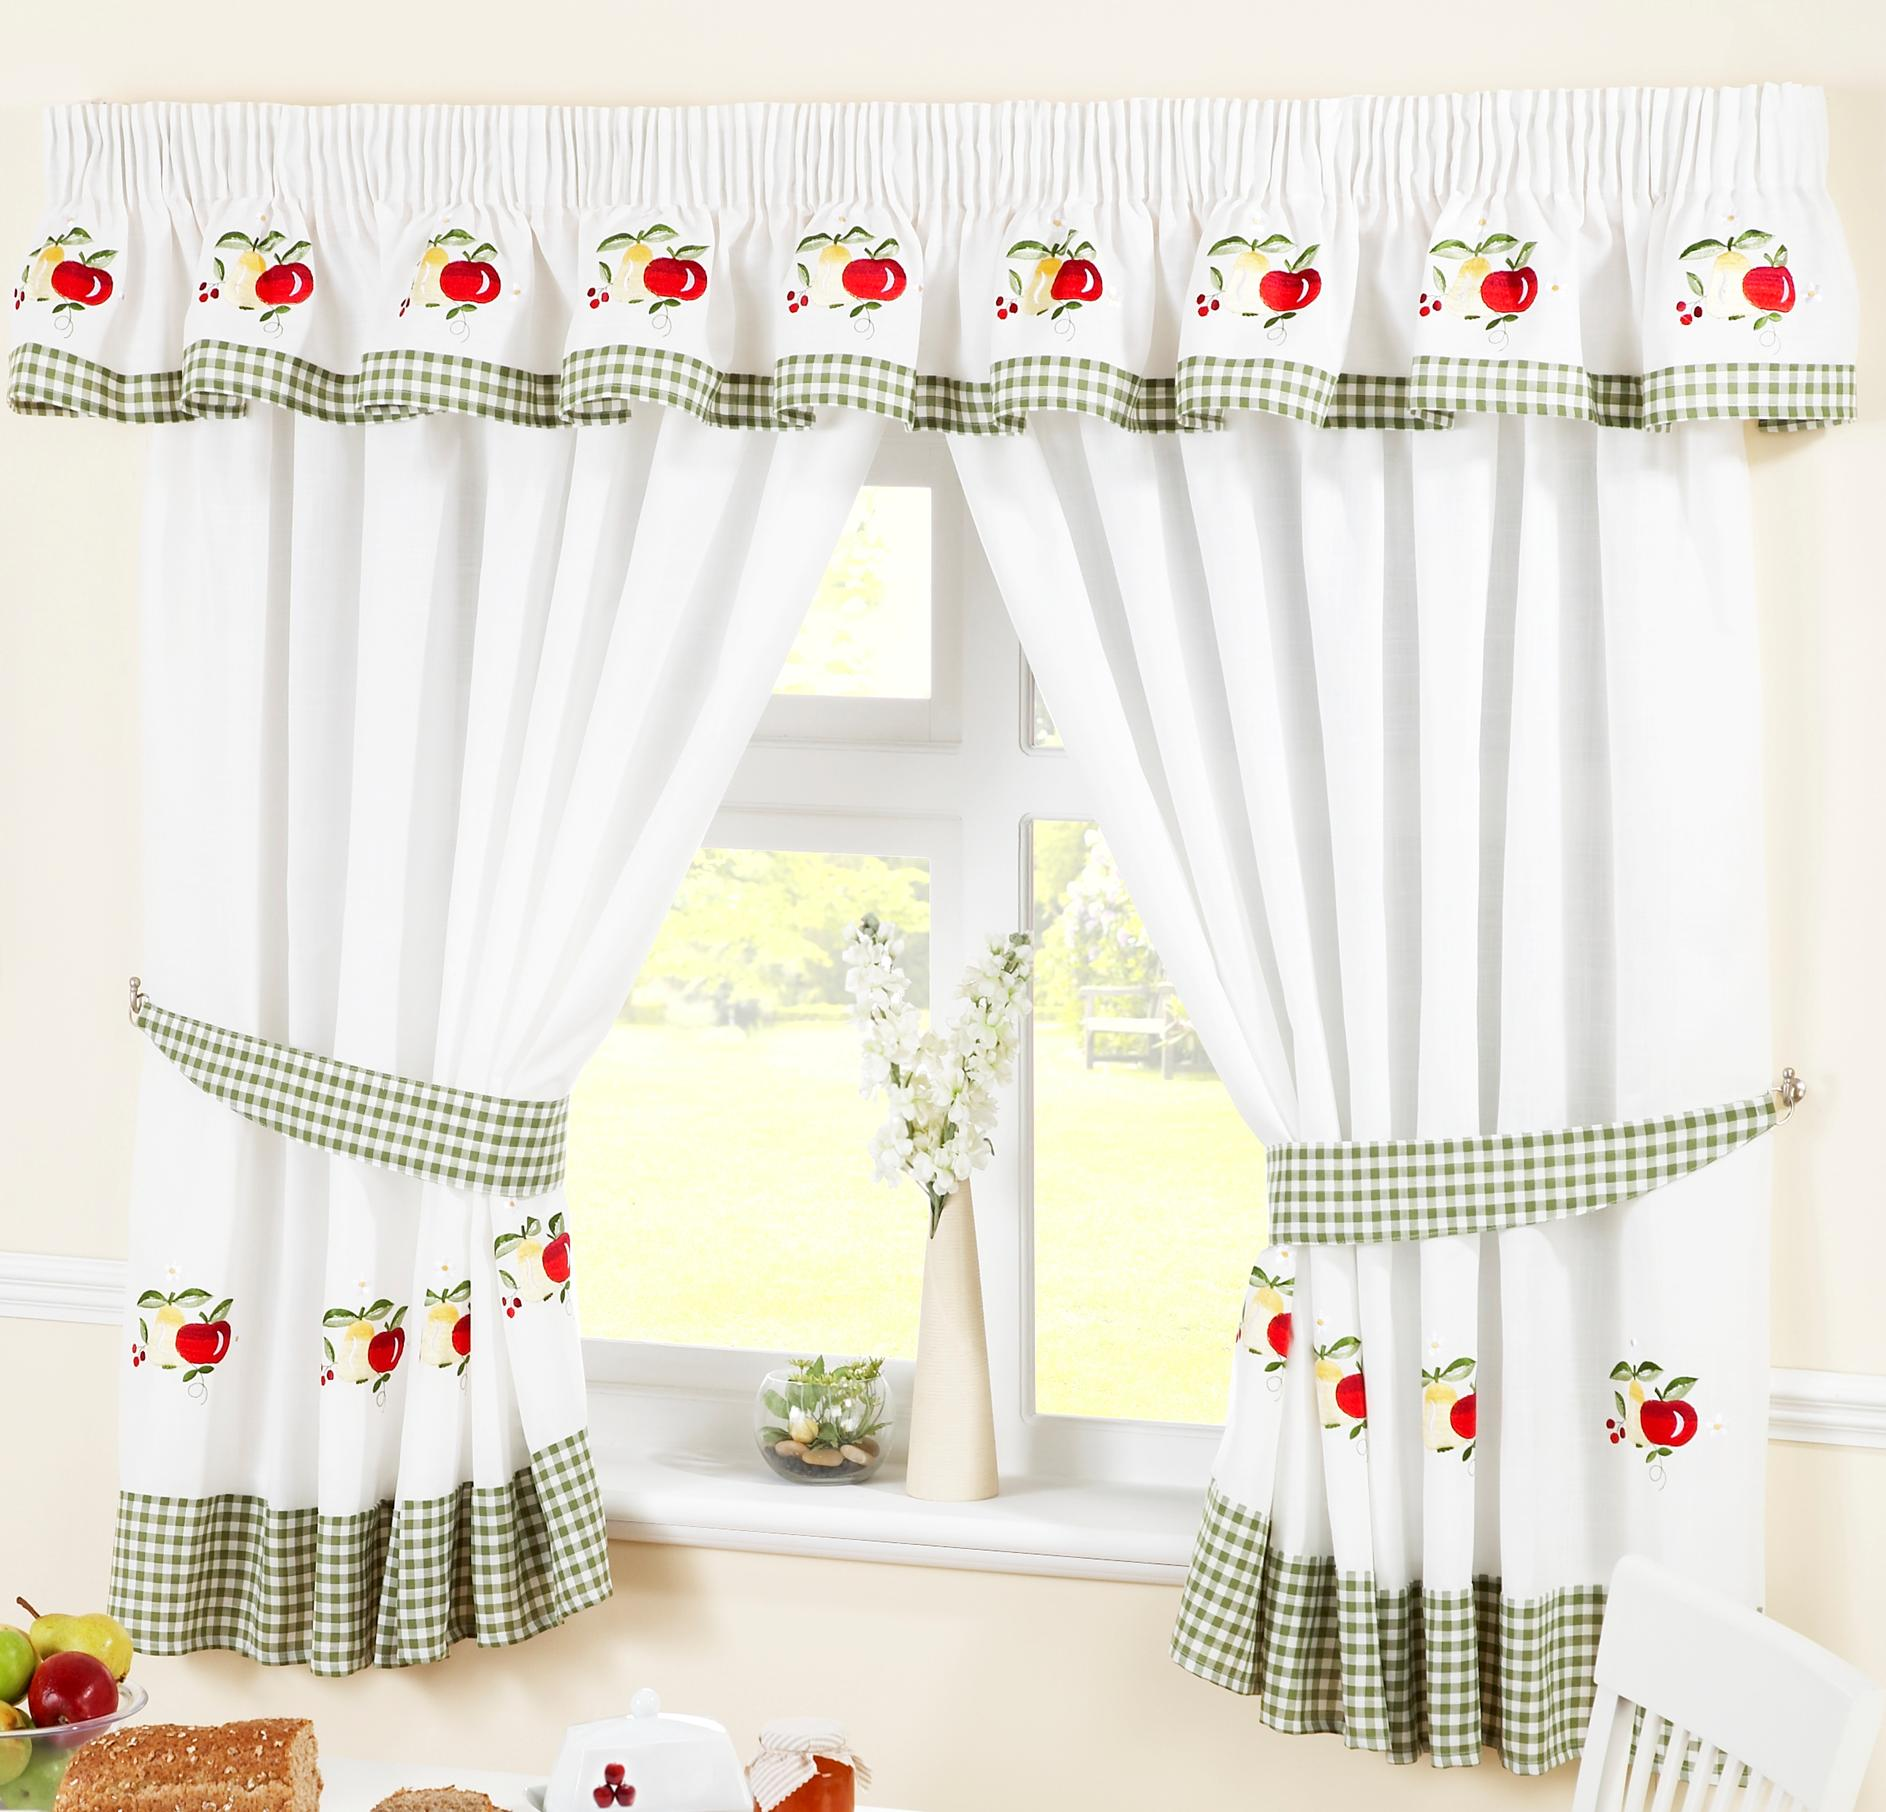 fruit kitchen curtains pantrys at home